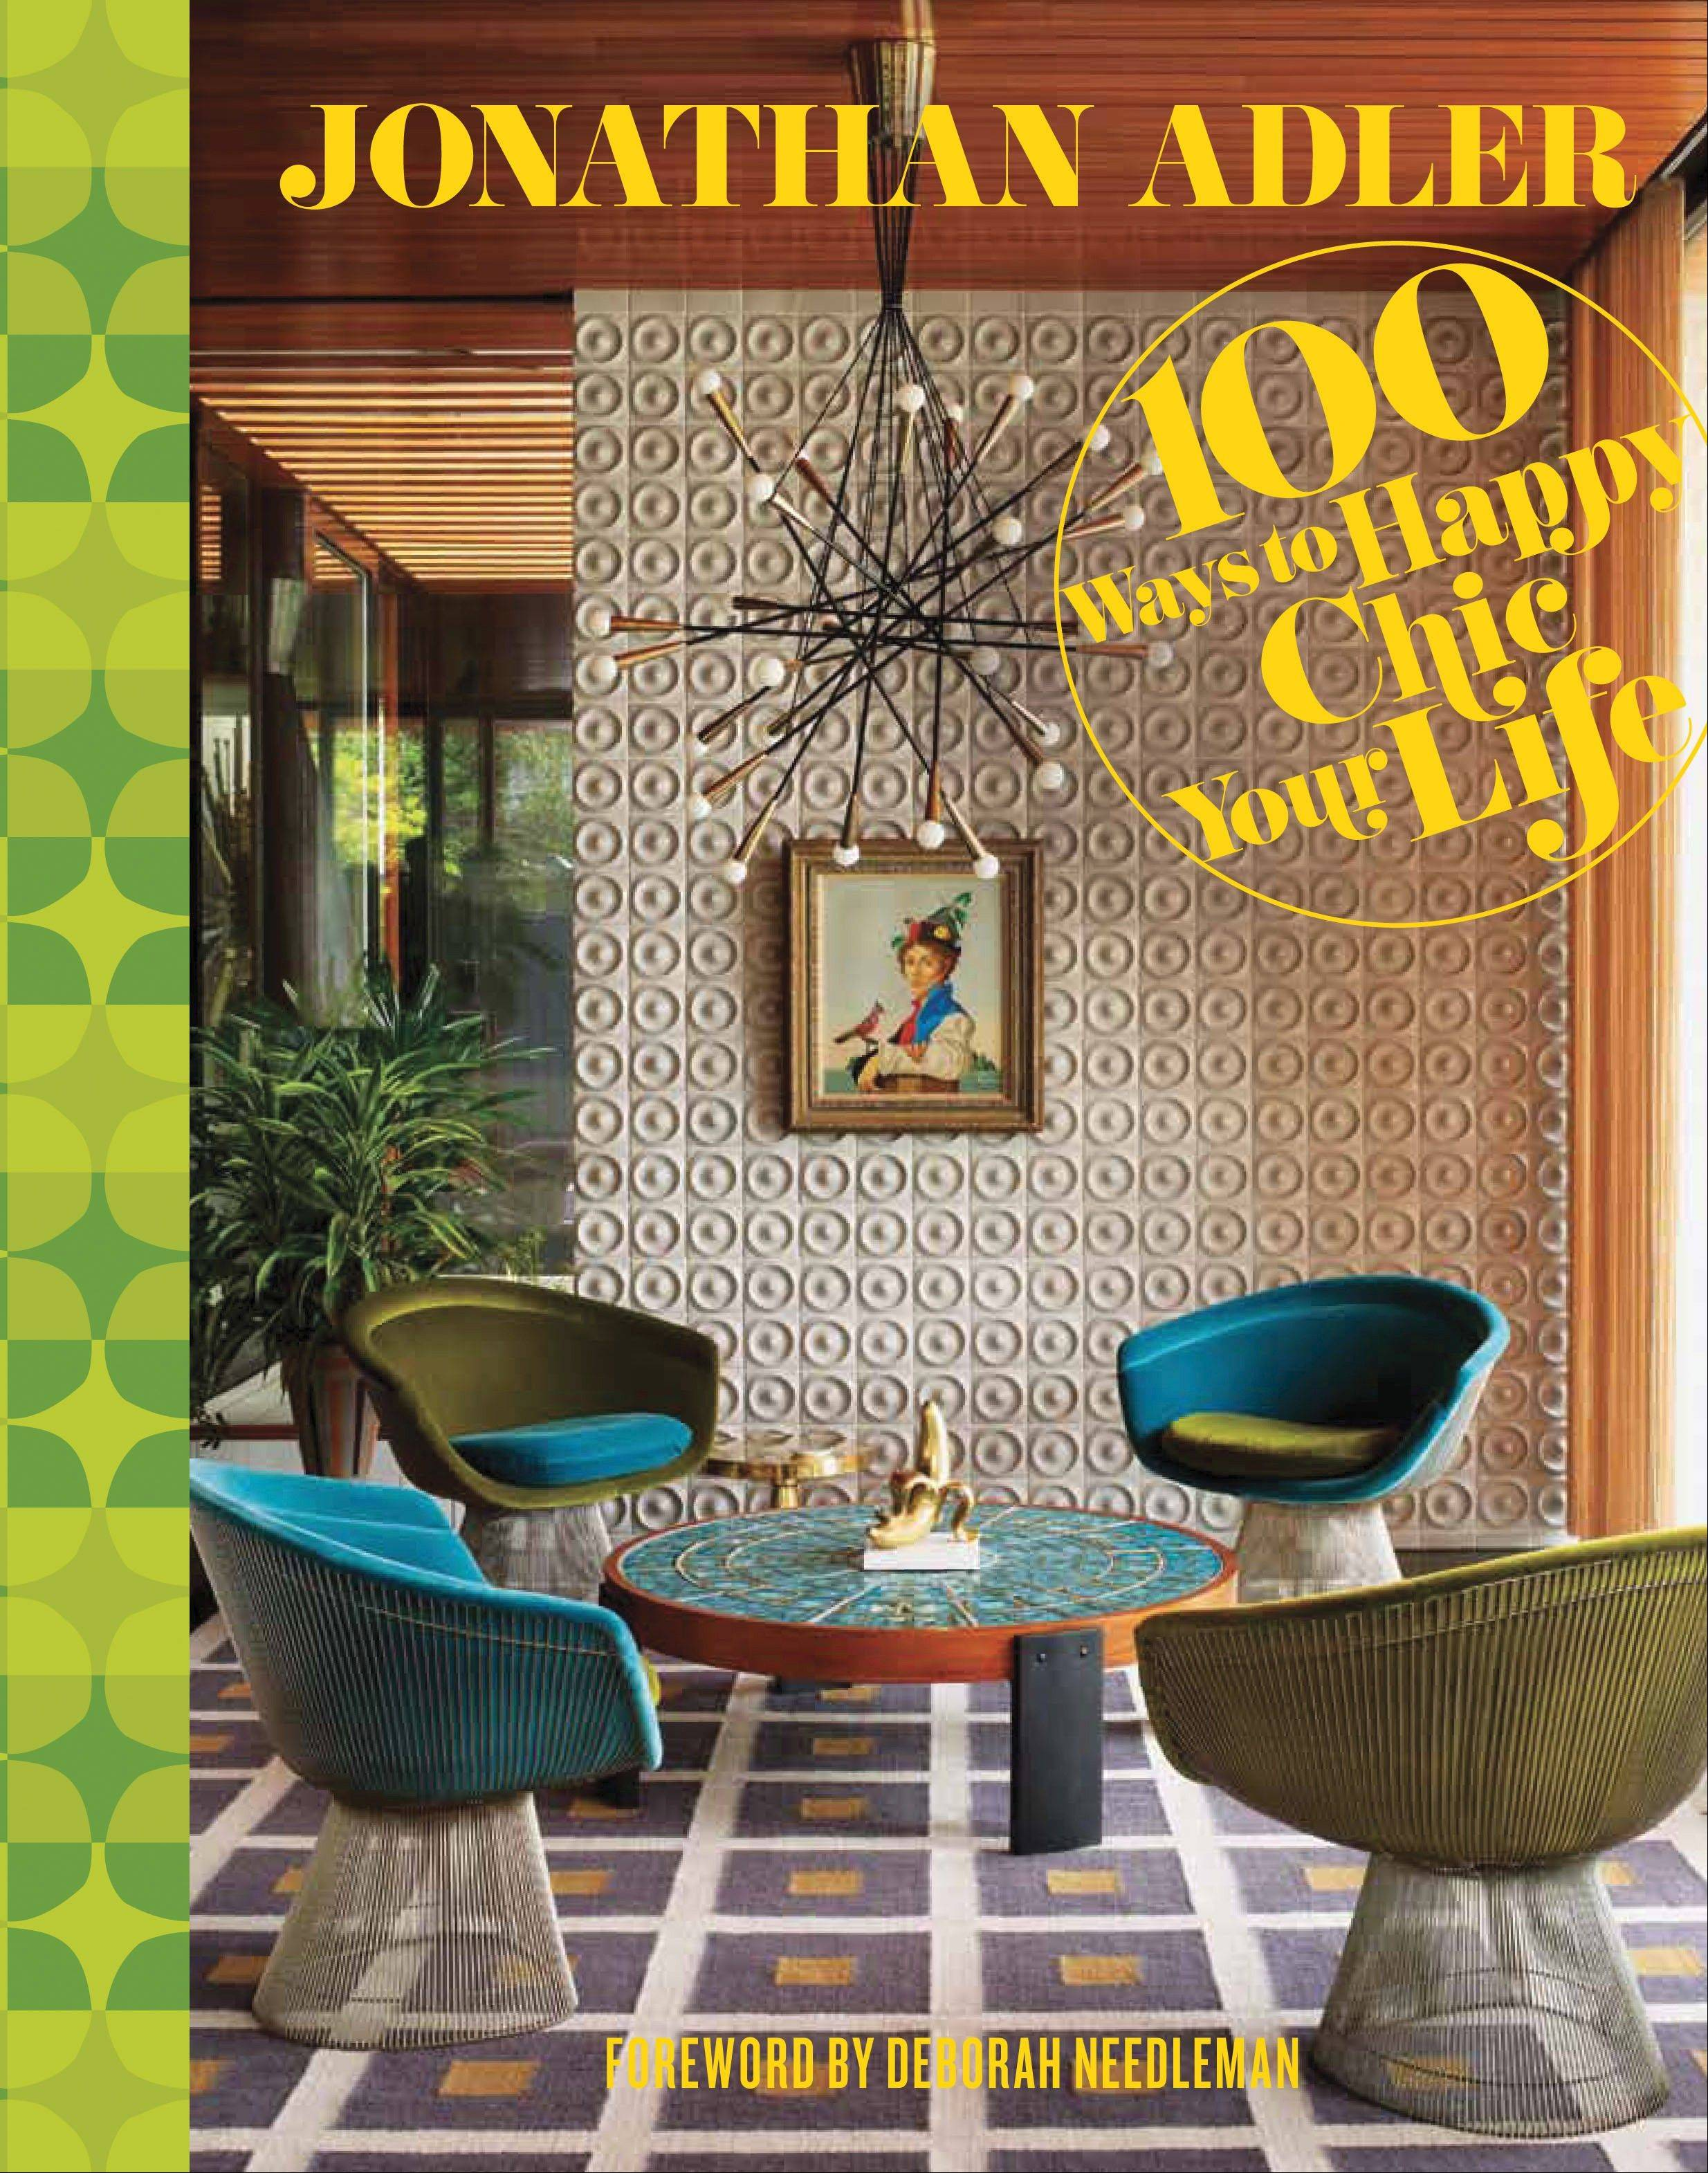 Only the fantastical mind of Jonathan Adler could consider using the phrase �happy chic� as a verb. Yet somehow, that�s exactly what he teaches the reader in his new book, �100 Ways to Happy Chic Your Life� (Sterling Signature, 2012), which is packed with gorgeous photos of interiors, sketches, lists of recommendations and words of whimsy.